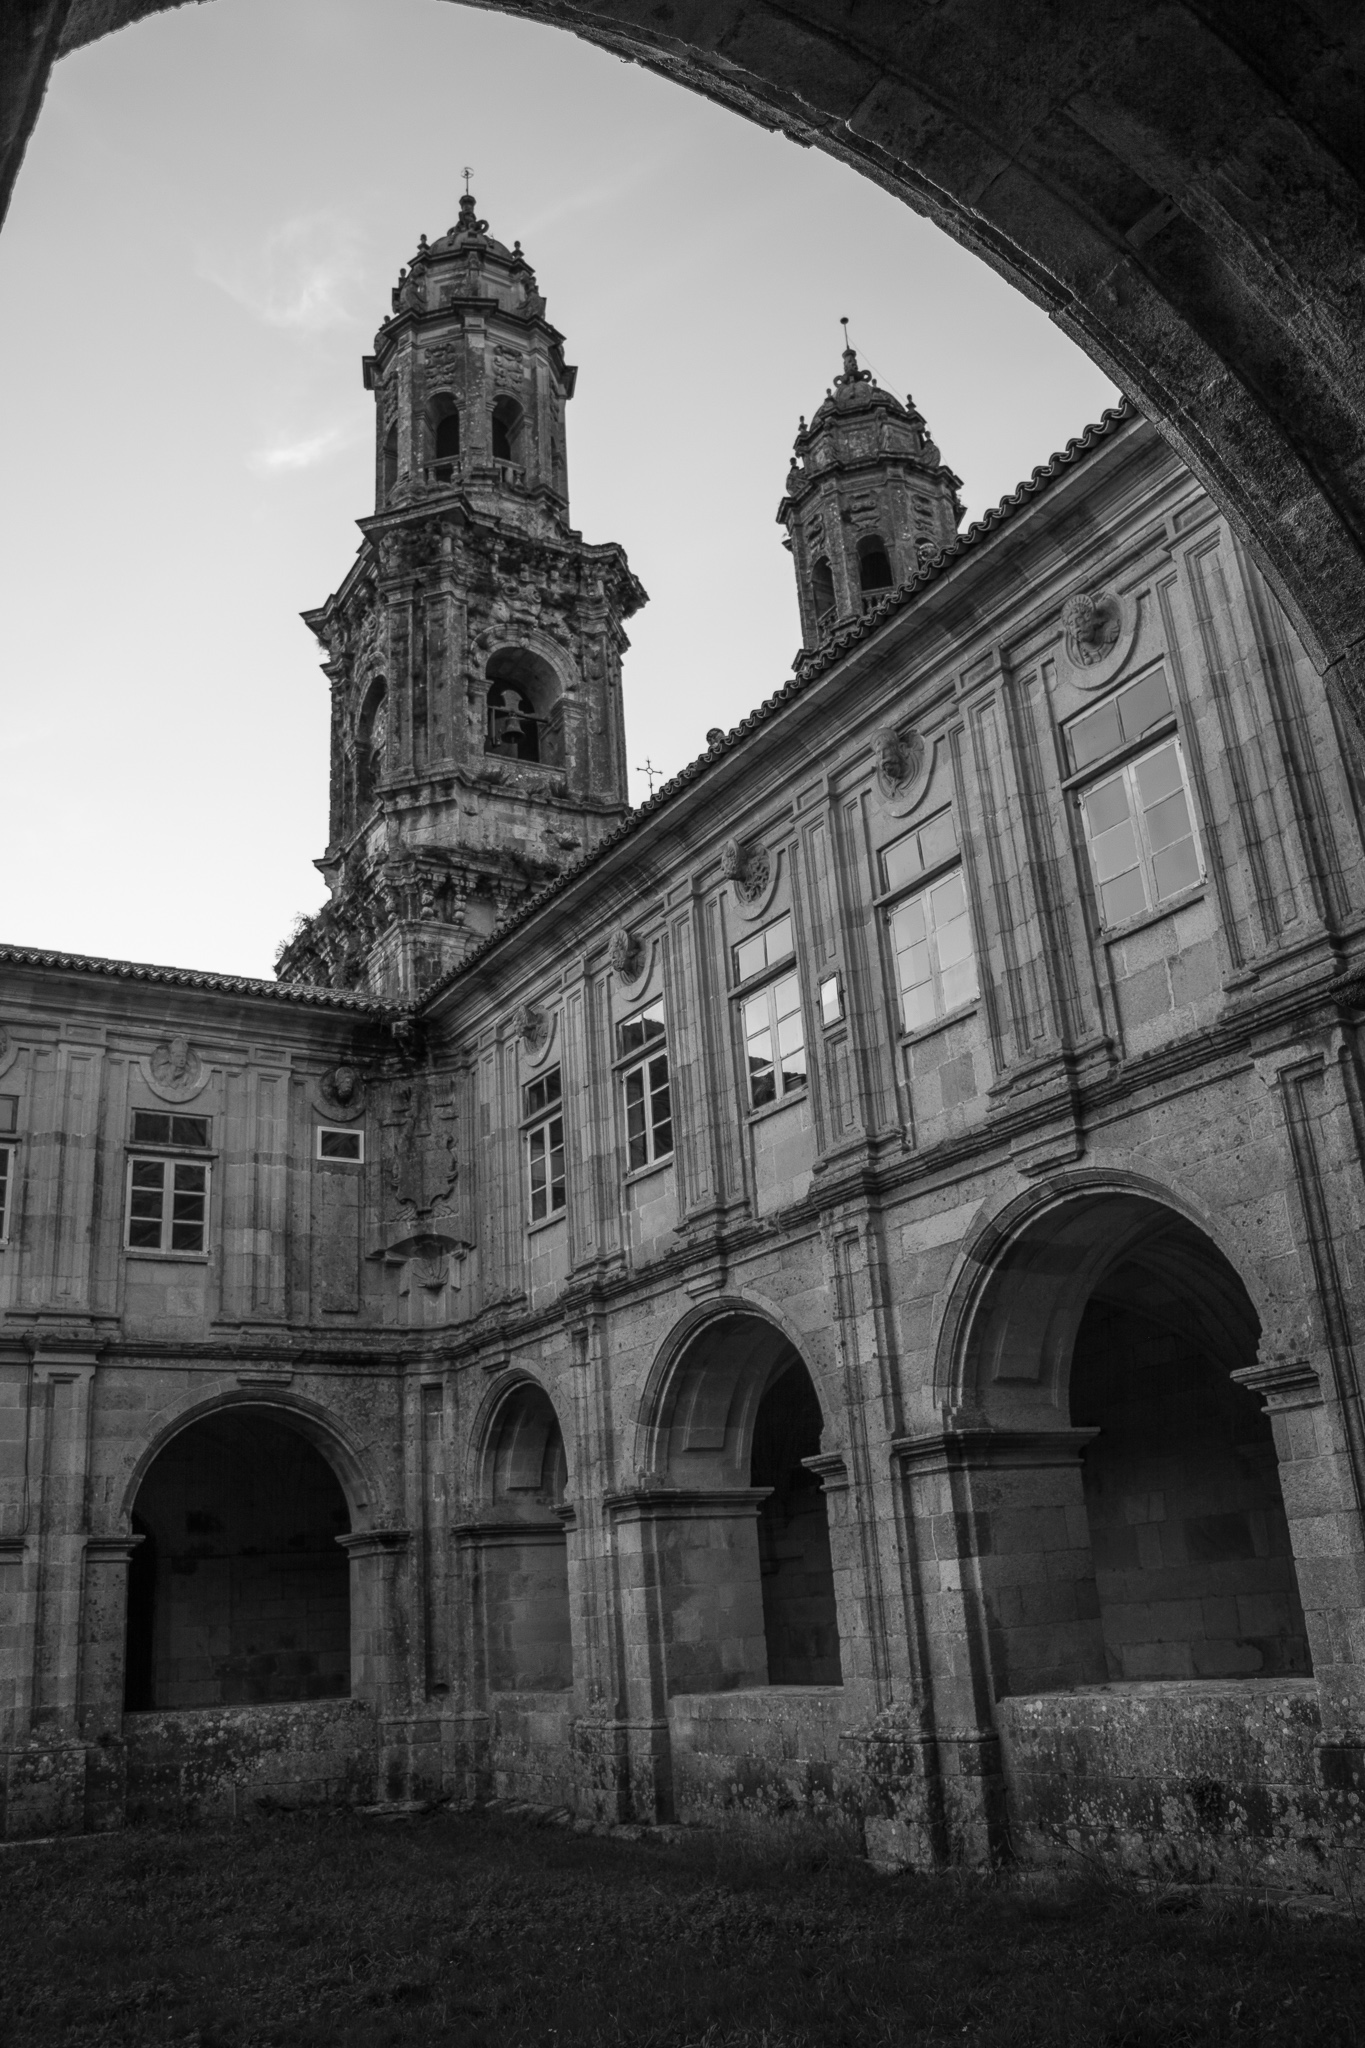 The monastery of Santa Maria de Sobrado dos Monxes, municipality of Sobrado, is one of the main medieval monasteries of Galicia. <br>Declared National Artistic Historical Monument, after the reforms of the centuries XVI to XVIII, it also became one of the main monuments of Galician baroque.